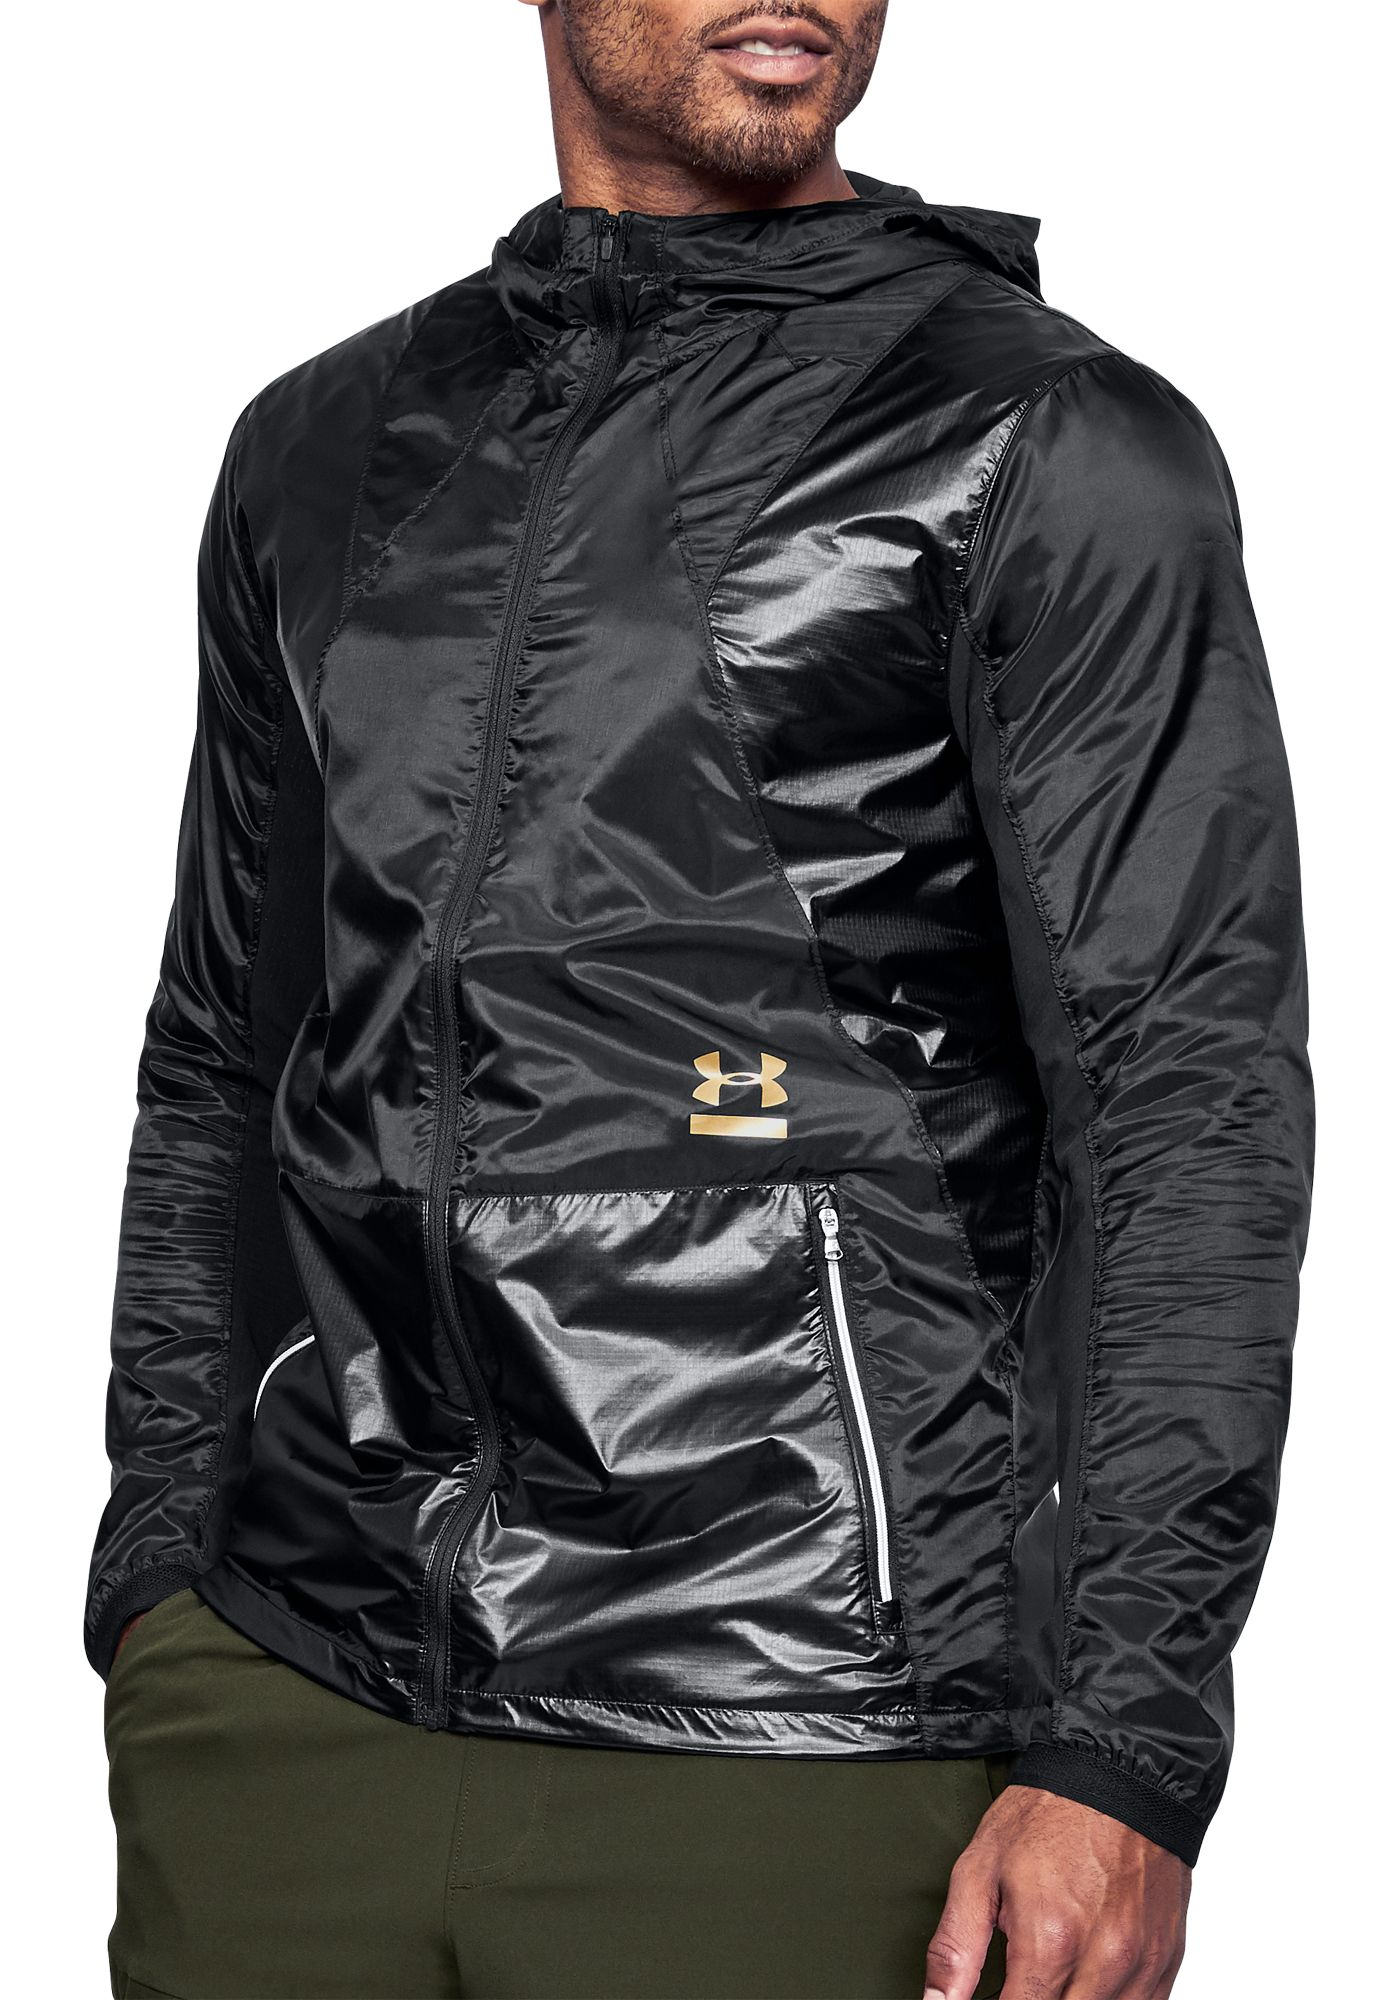 Under Armour Men's Perpetual Full Zip Jacket